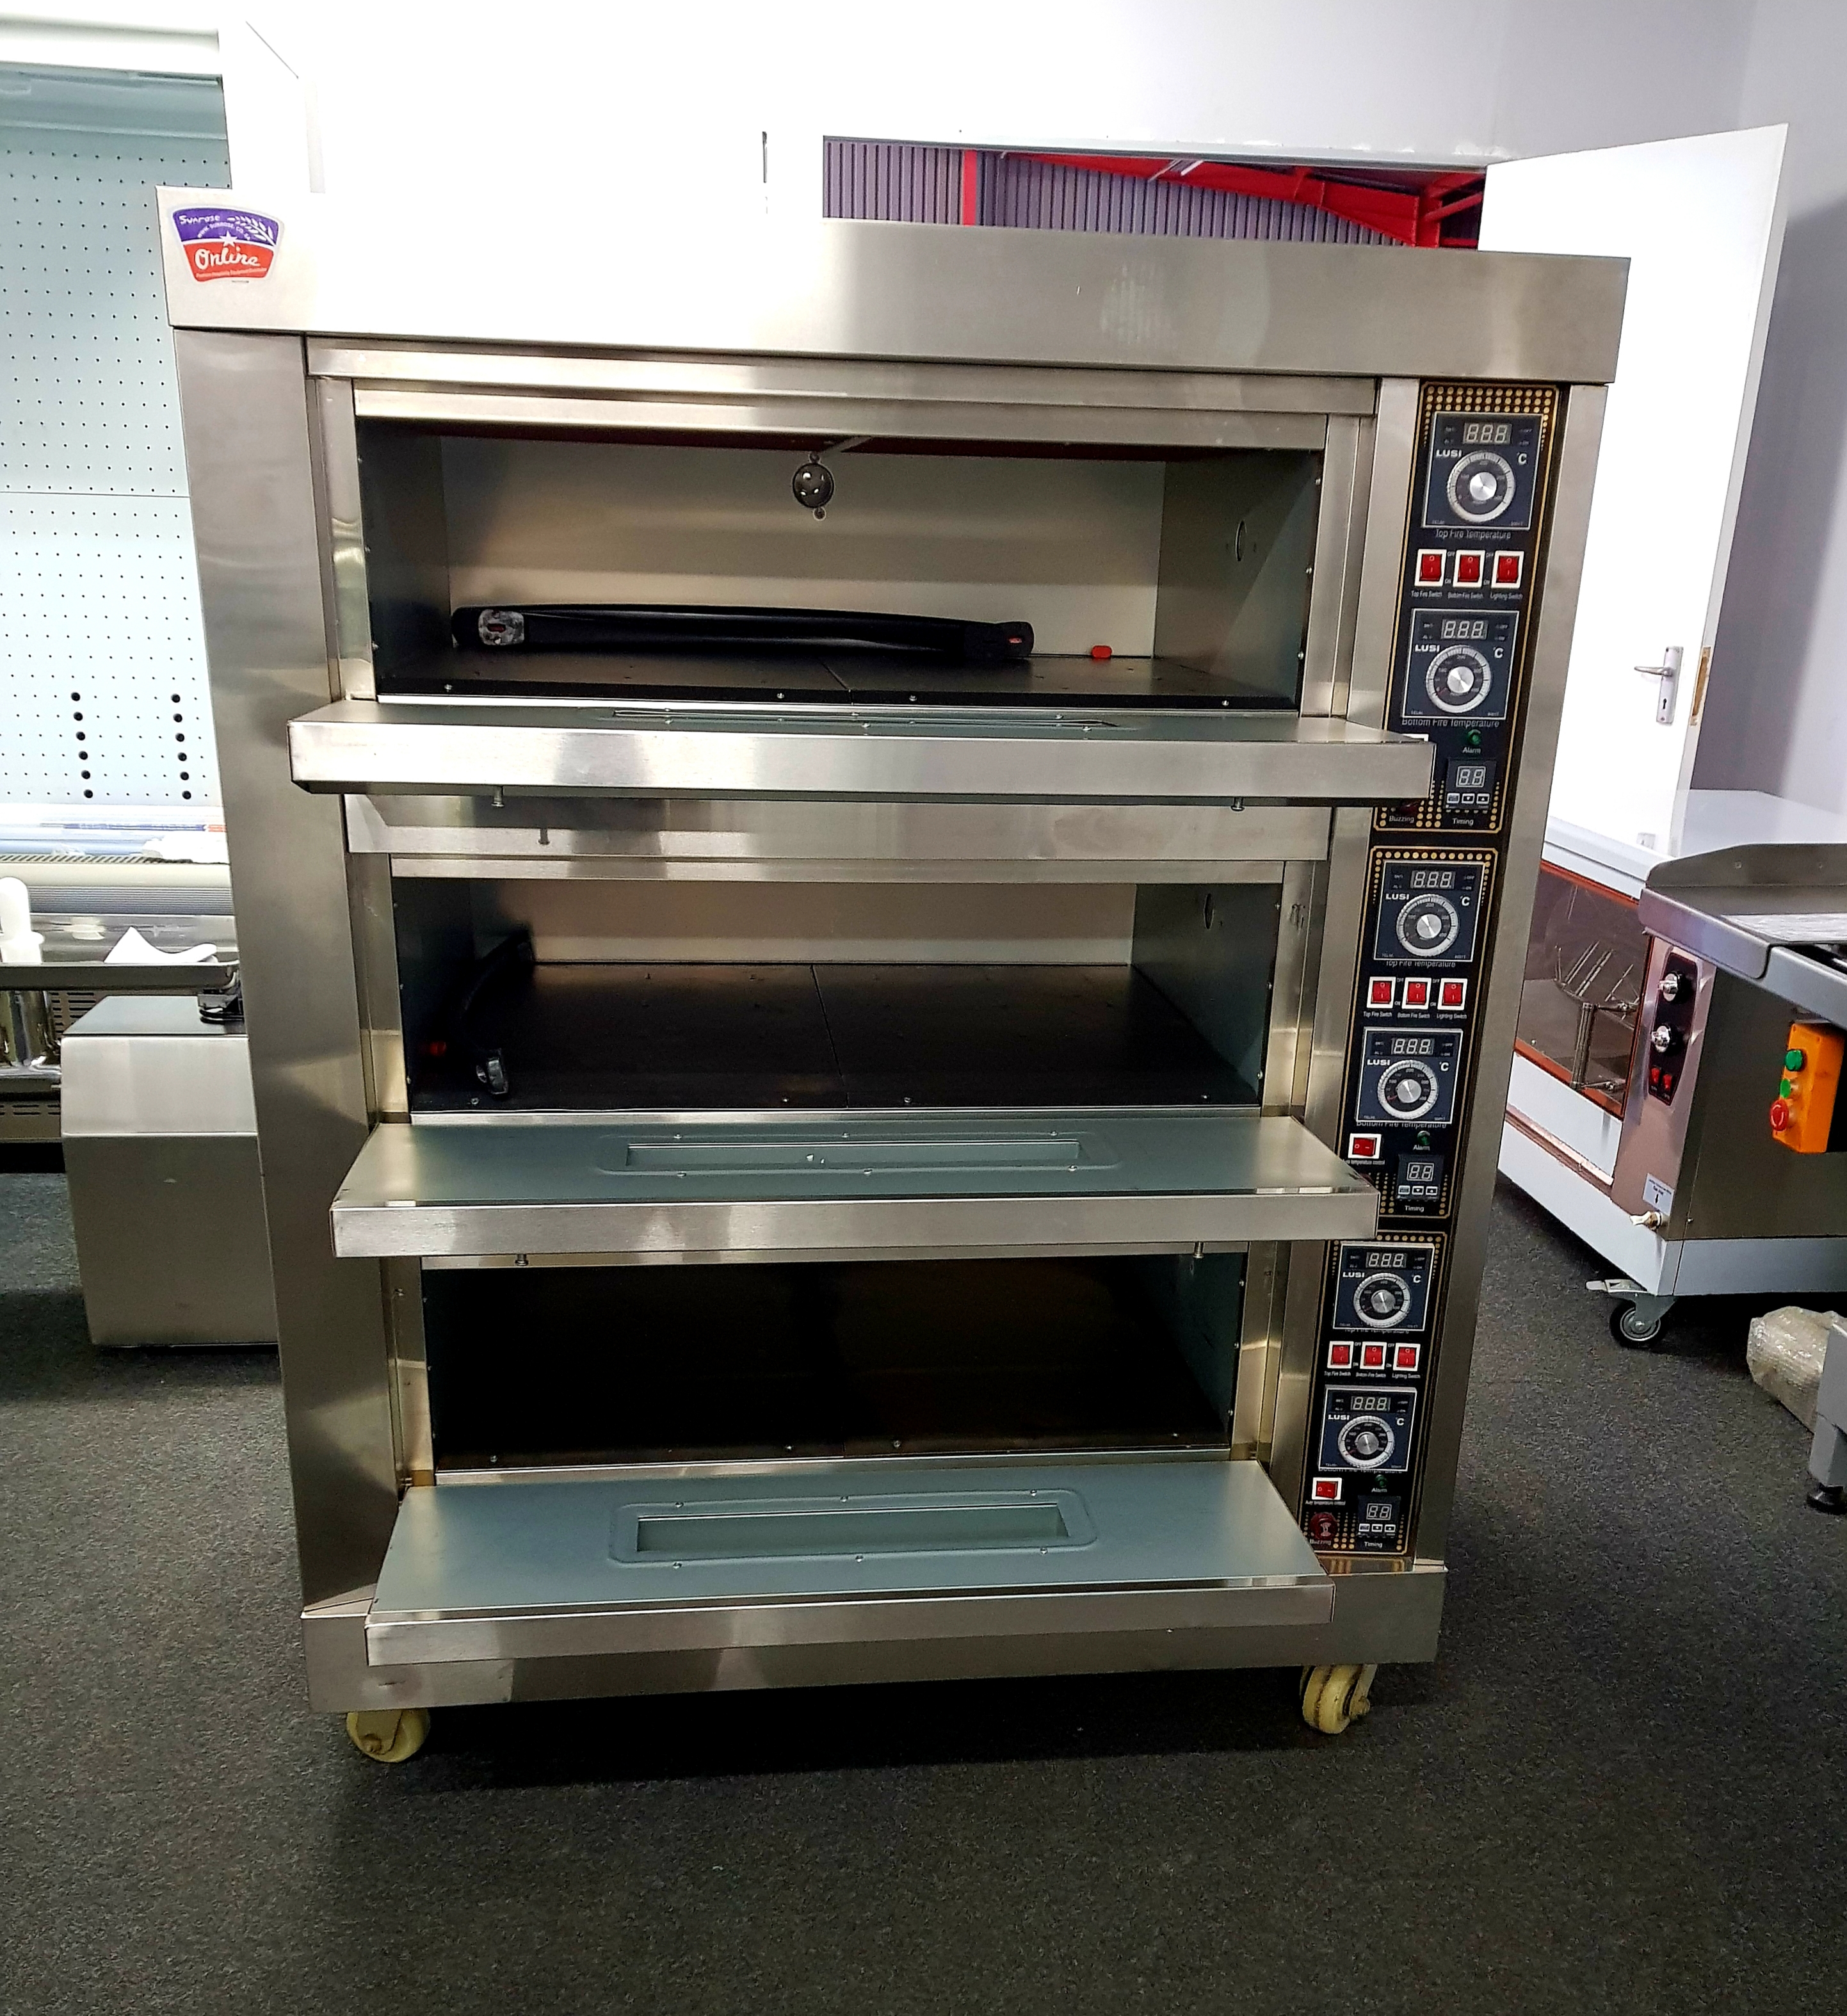 Industrial Kitchen Ovens For Sale: BAKING OVEN FOR SALE